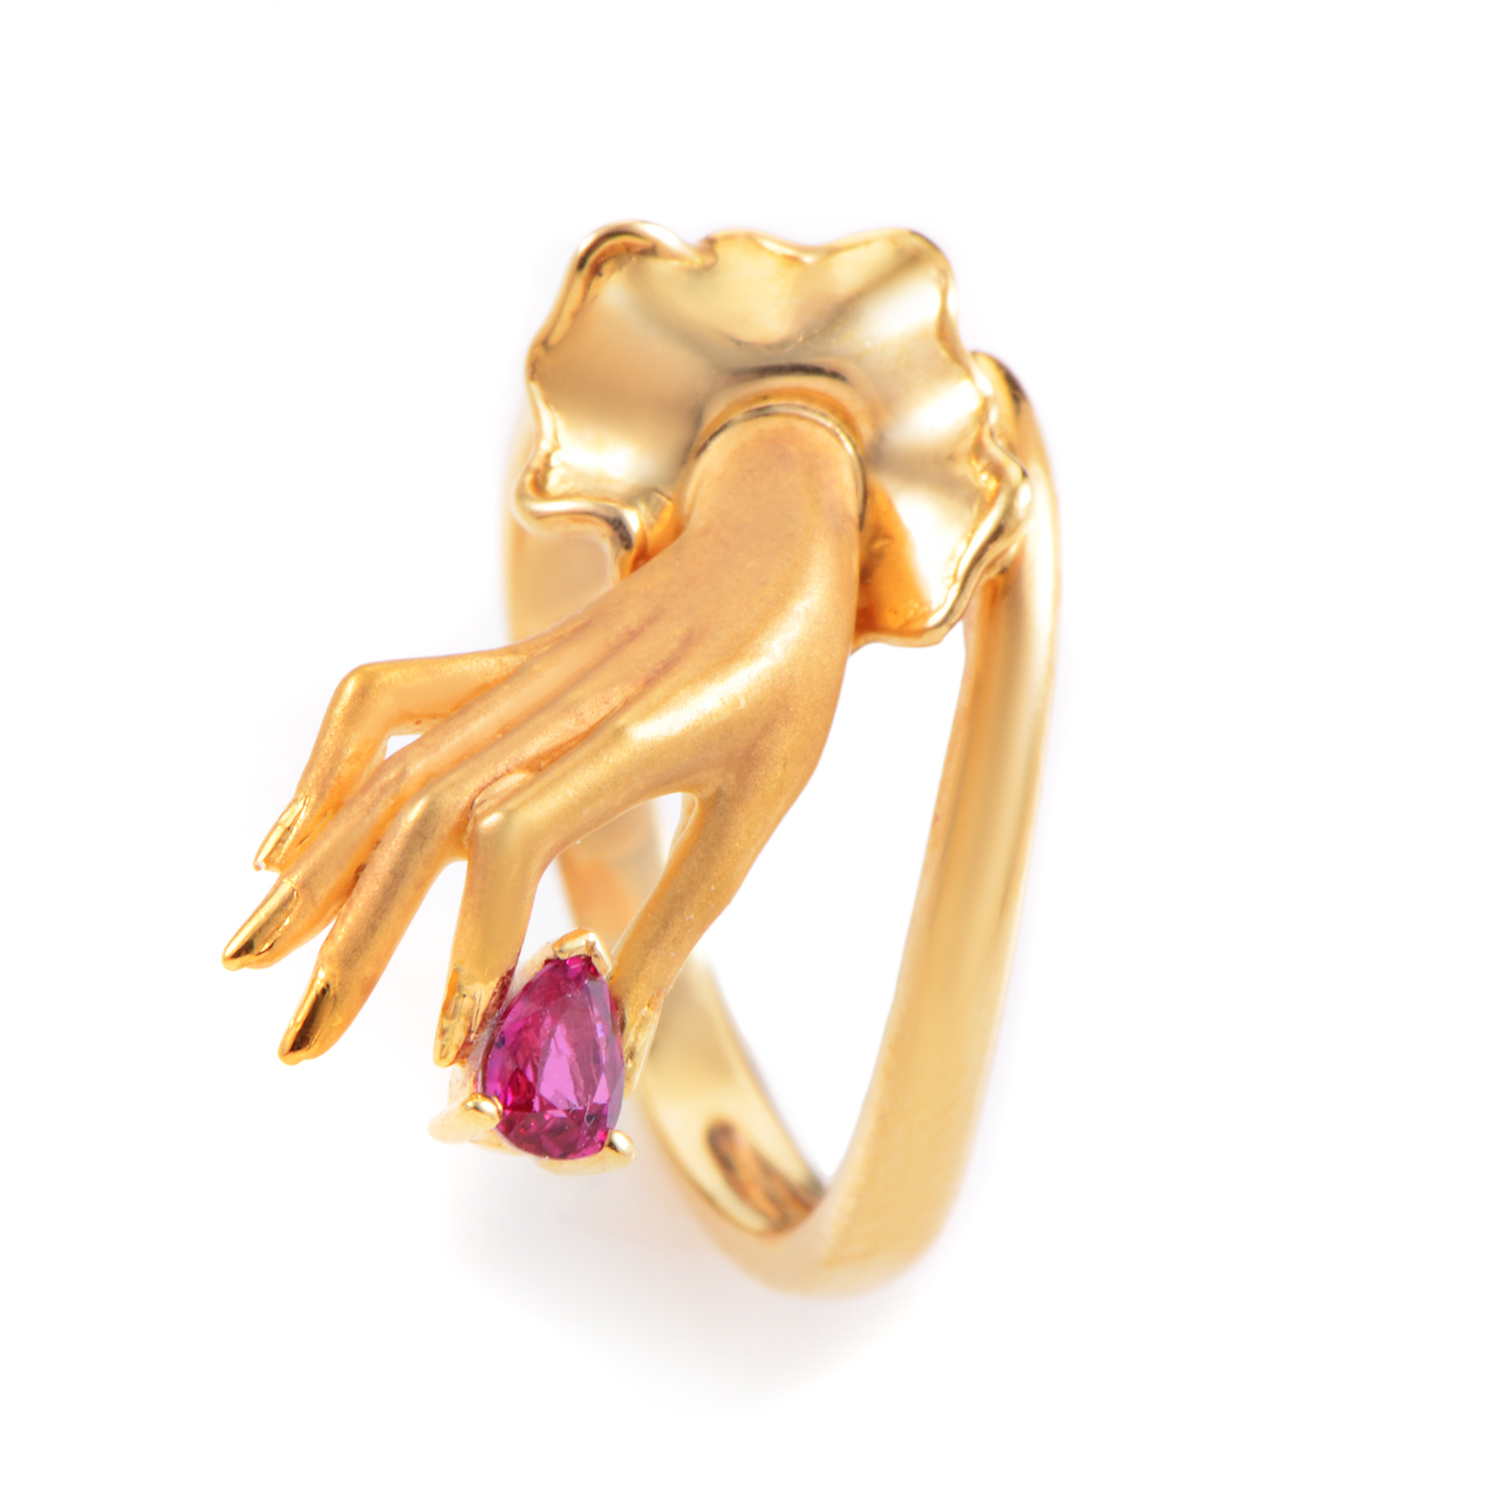 Carrera y Carrera Women's 18K Yellow Gold Dainty Hand Ruby Ring